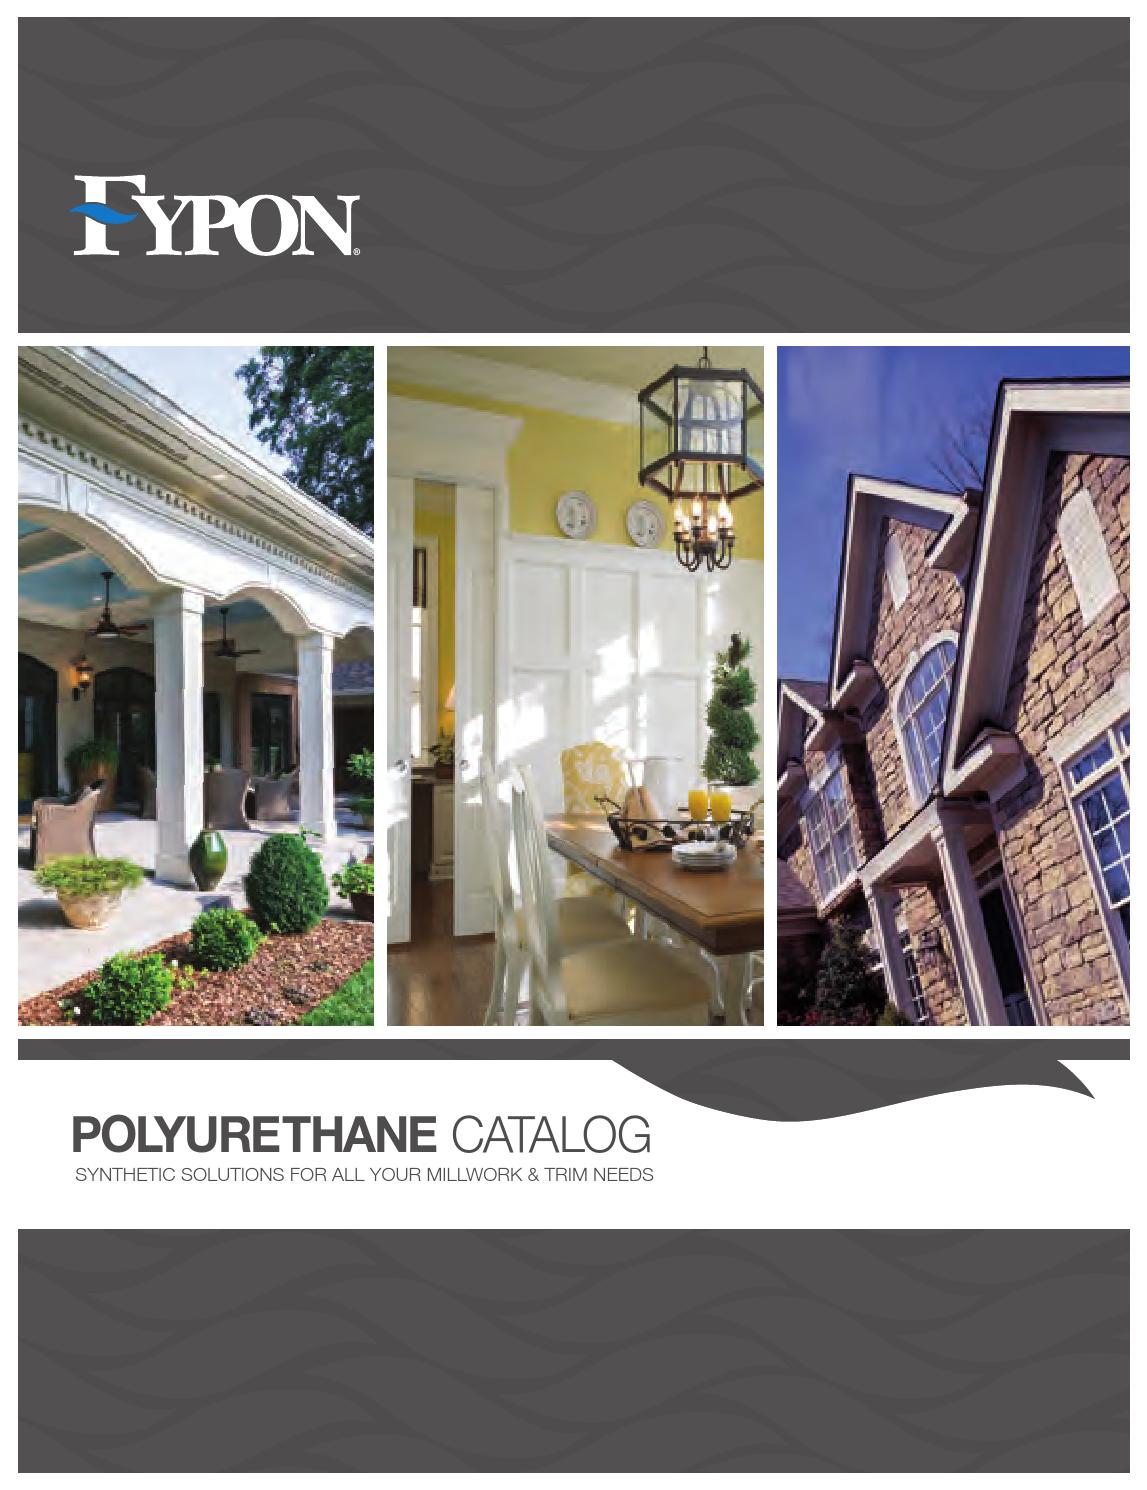 Fypon catalog by western building products issuu for Fypon millwork